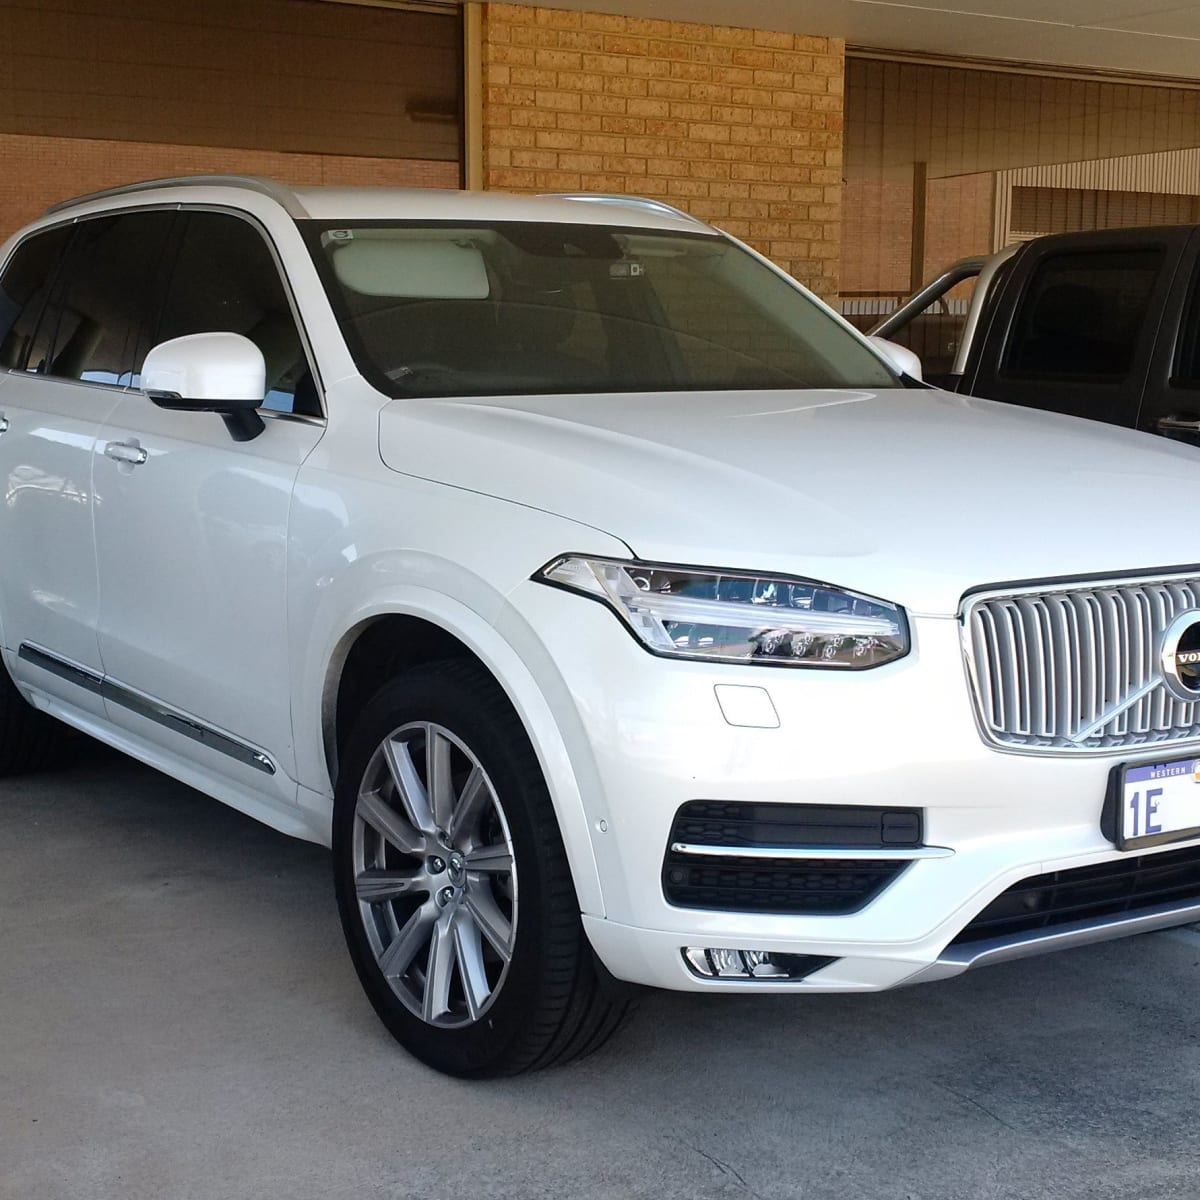 2015 Volvo Xc90 T6 2 0 Inscription Review | CarAdvice